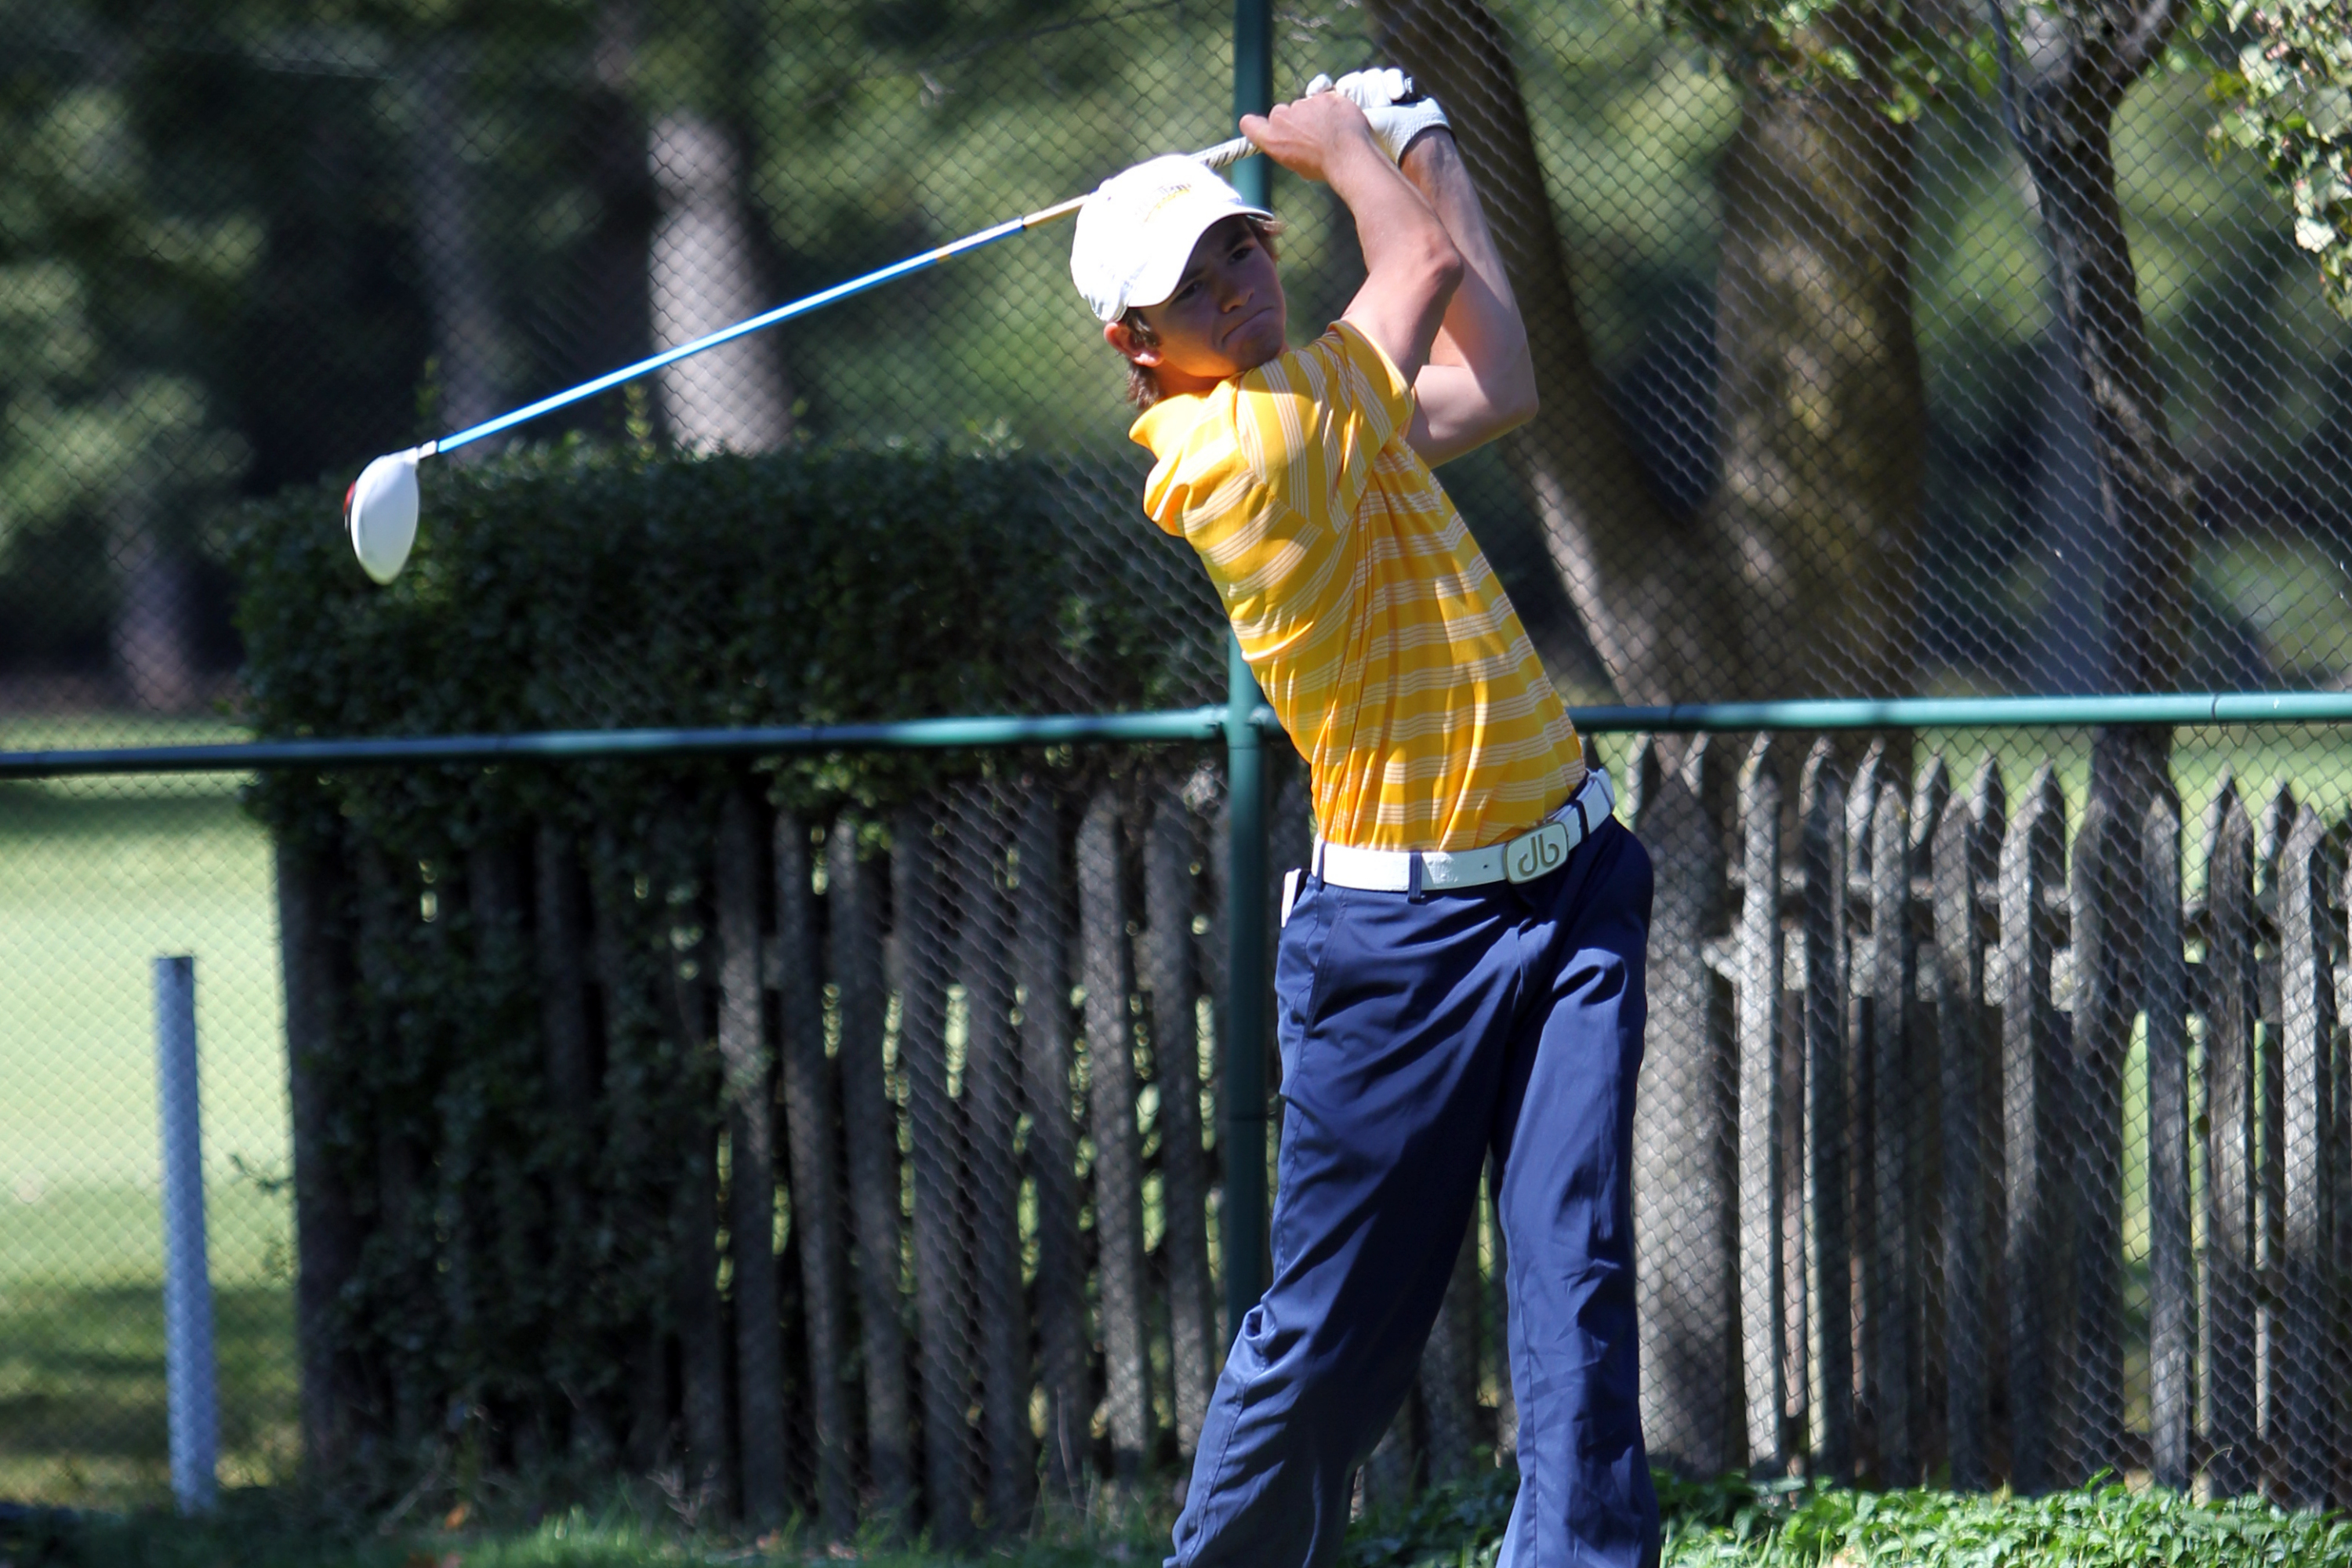 Pat Sanchez led the Golden Eagles with an 11th place individual finish